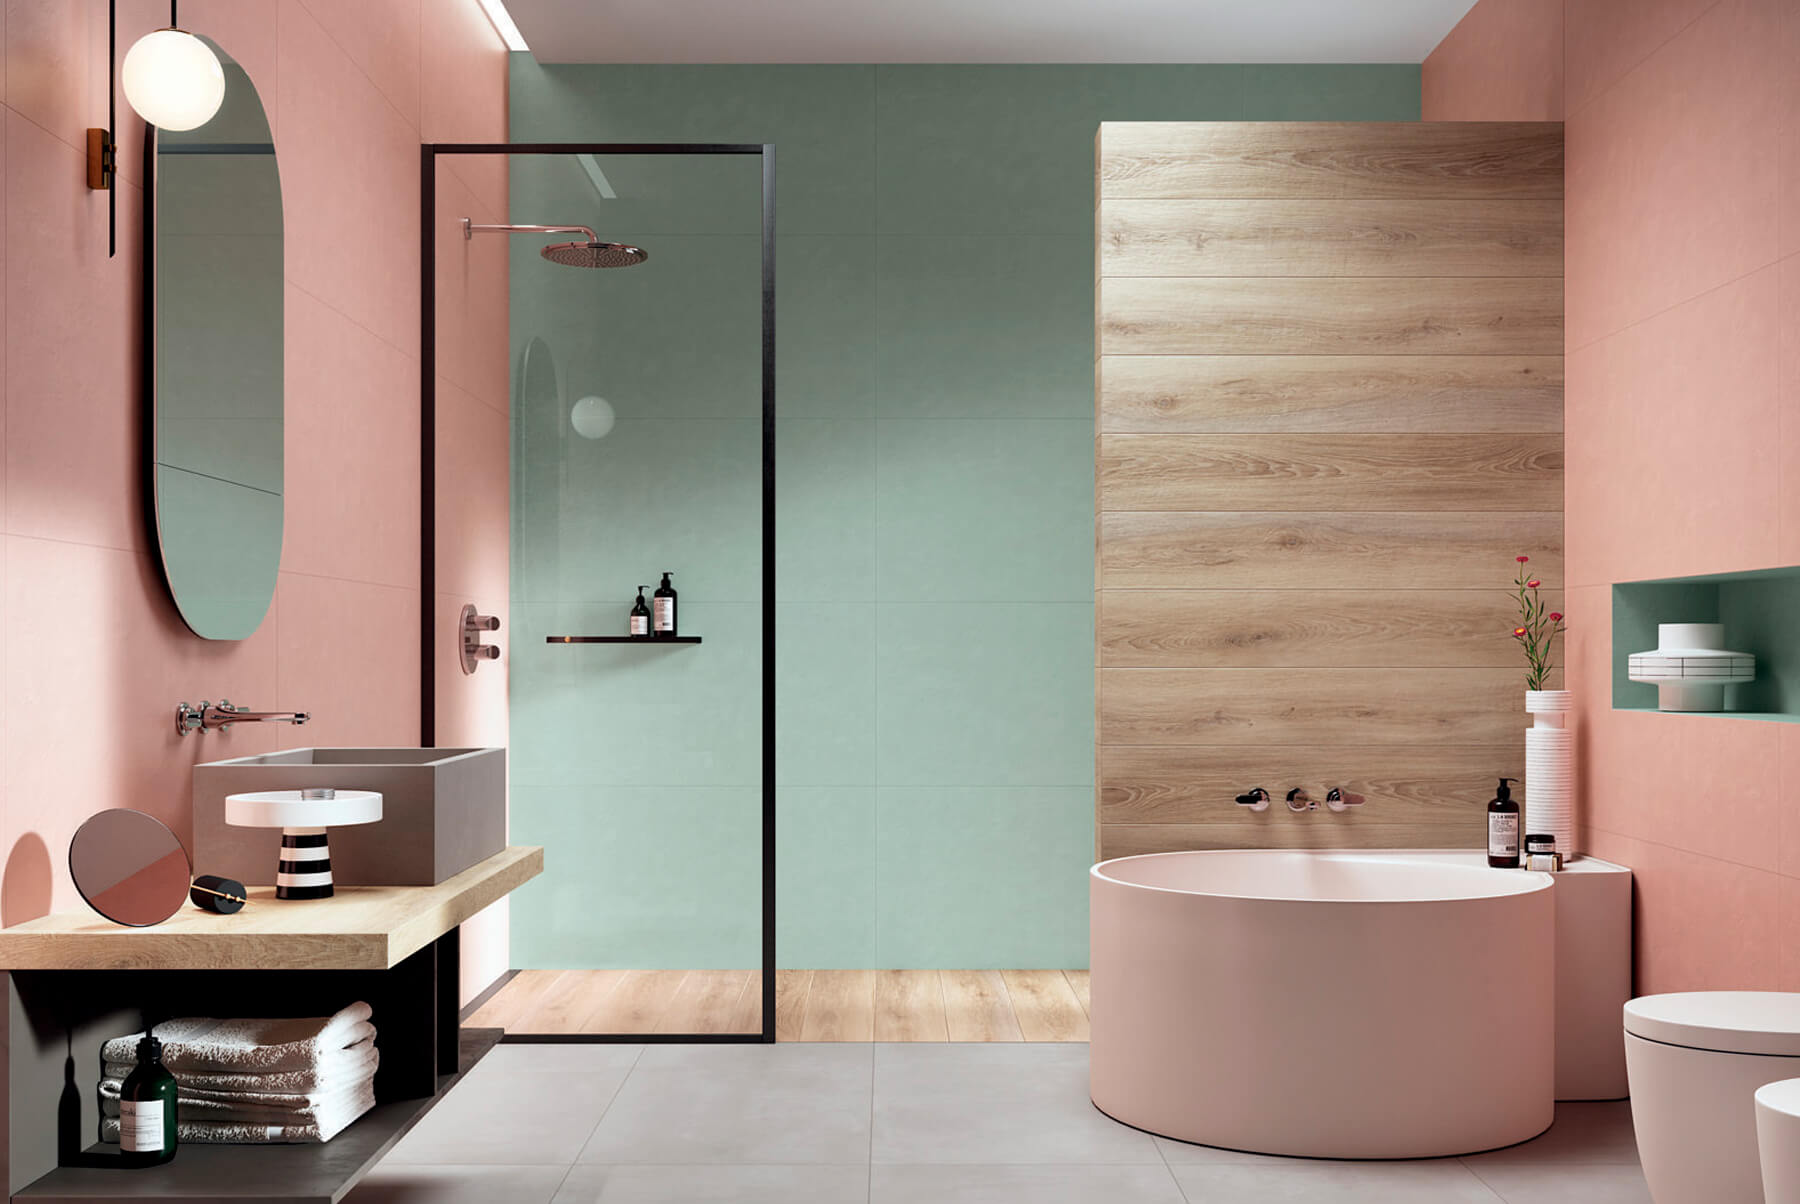 TILES-WIDE-&-STYLE-MINI-INSET-9-1800x1204